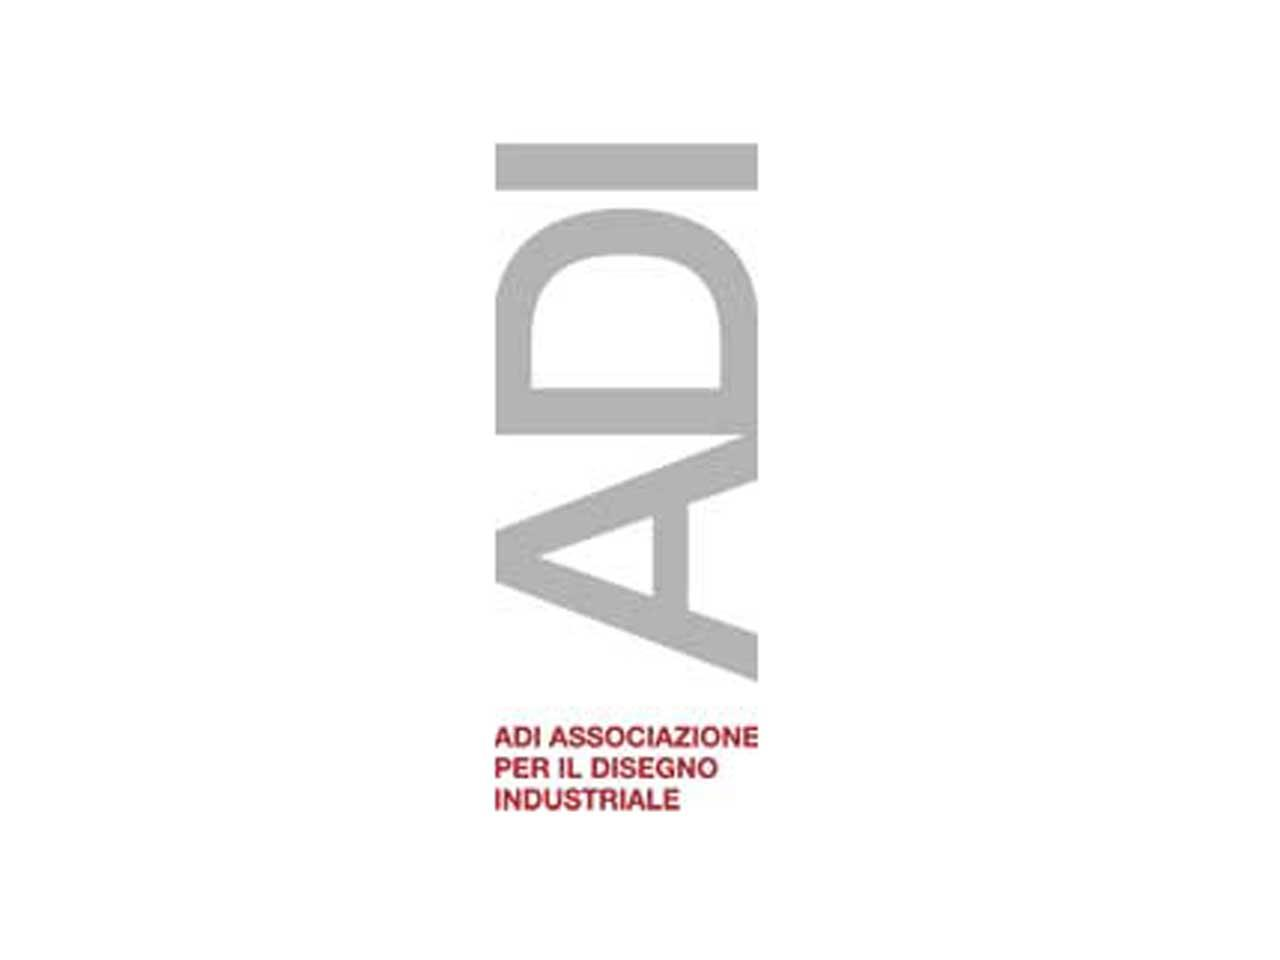 5° edizione dell'ADI Ceramics & Bathroom Design Award